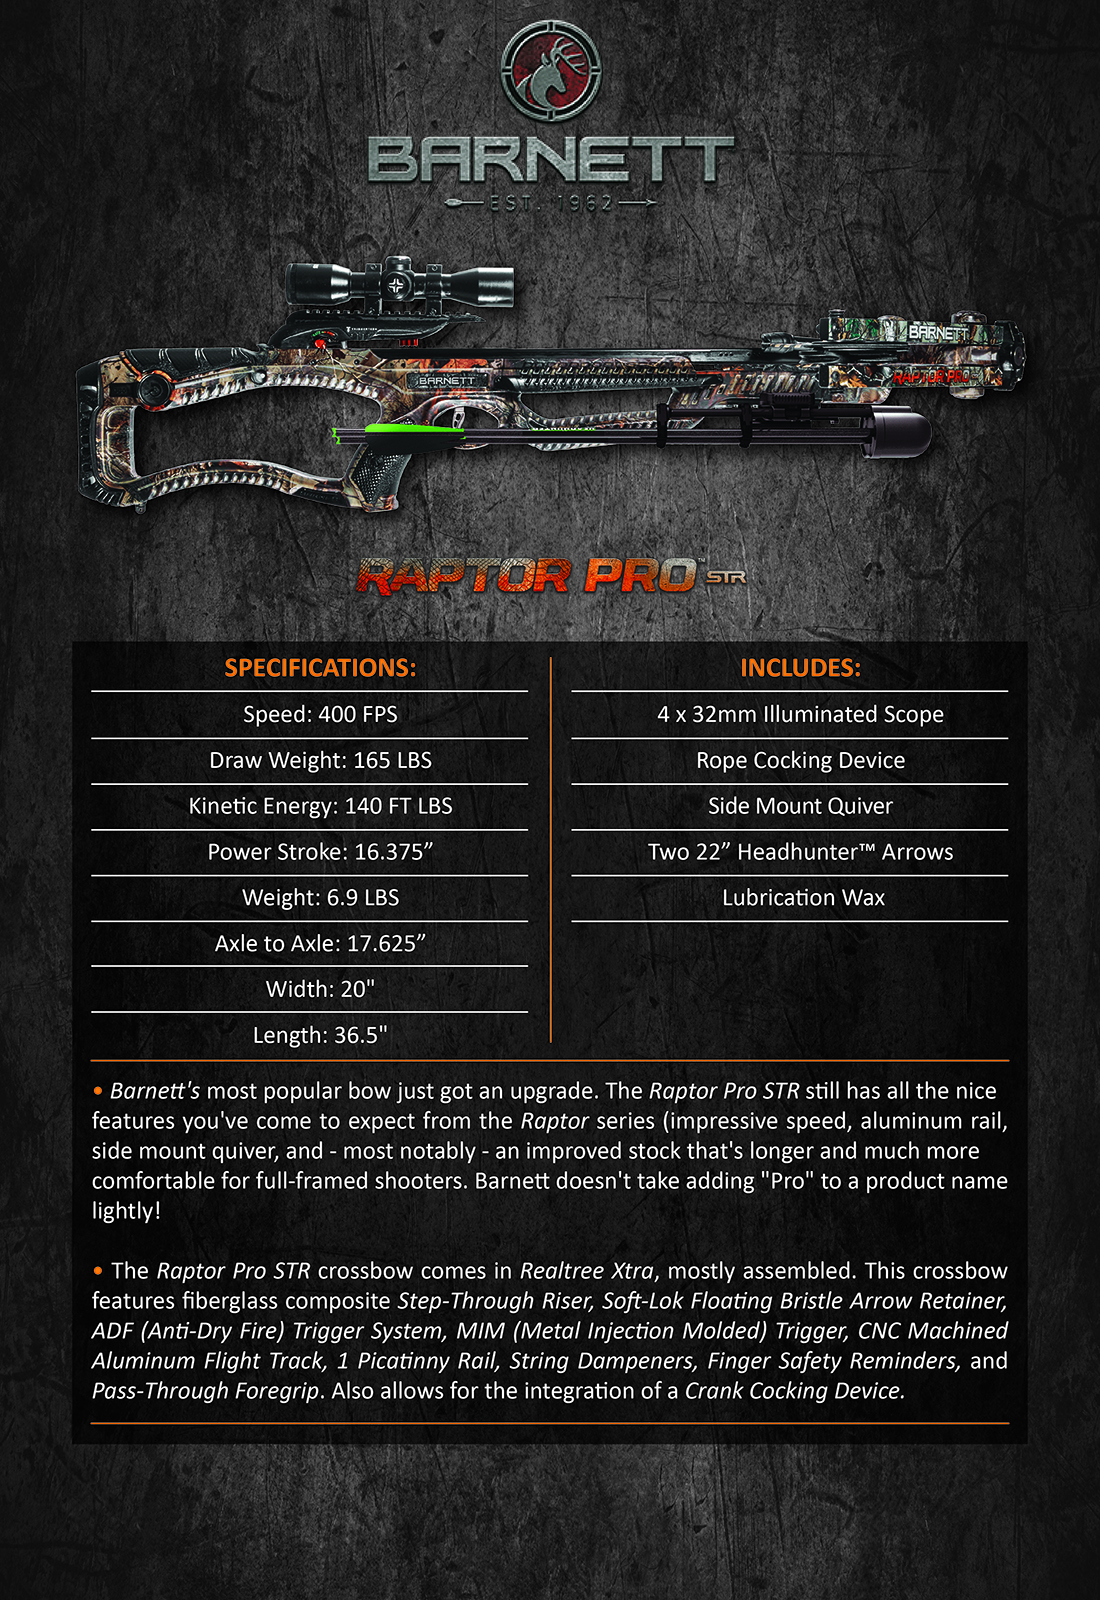 Barnett_Raptor_Pro_STR_Product_Description